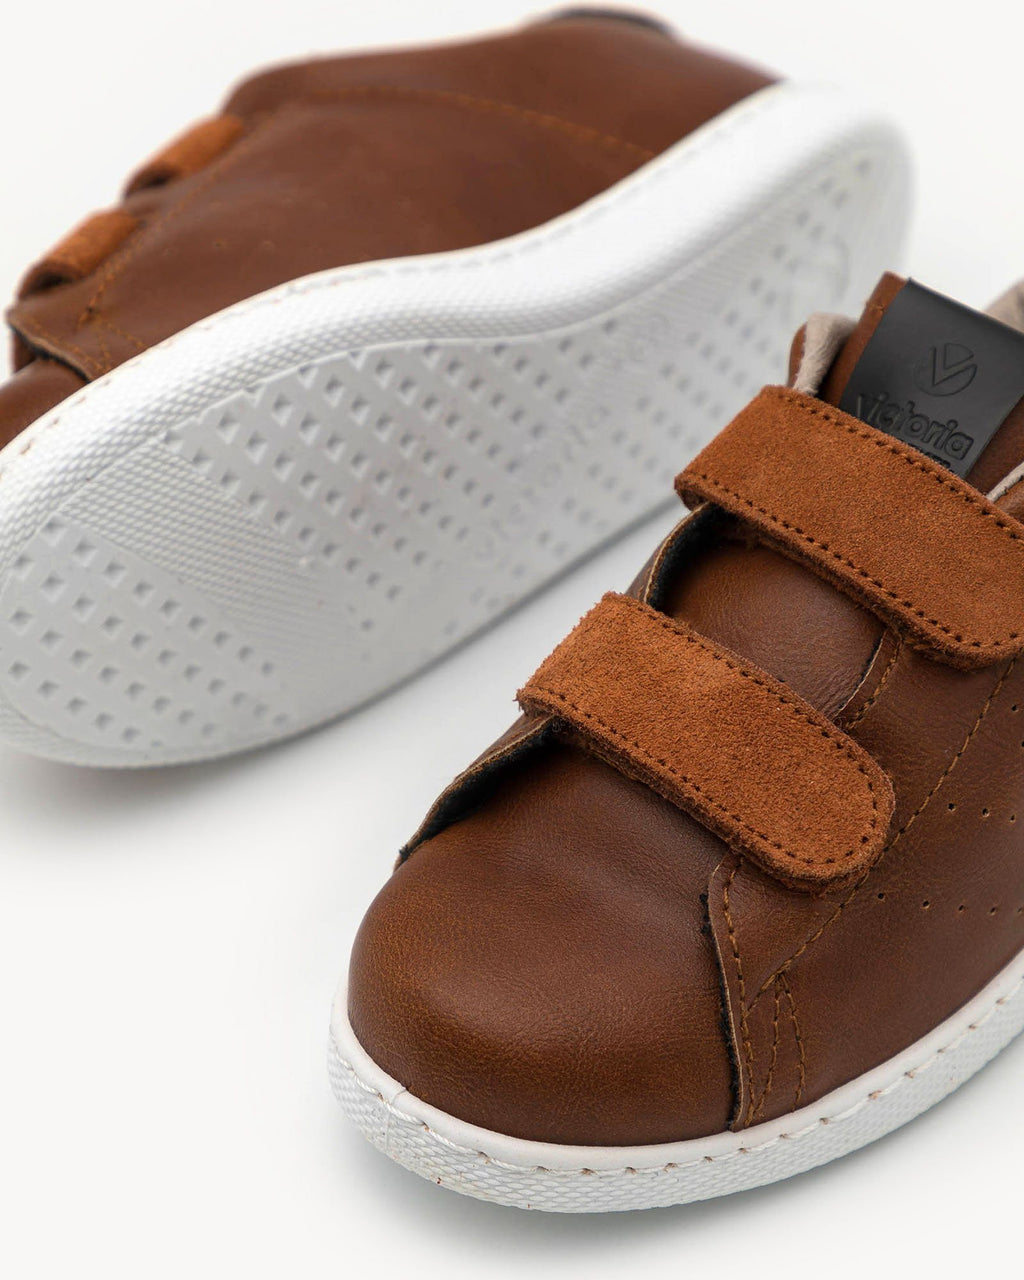 variant_2 | EN Brown Sneaker Shoes Kids Voctoria Shoes | DE Braune Sneaker mit Klettverschluss für Kinder Victoria Shoes